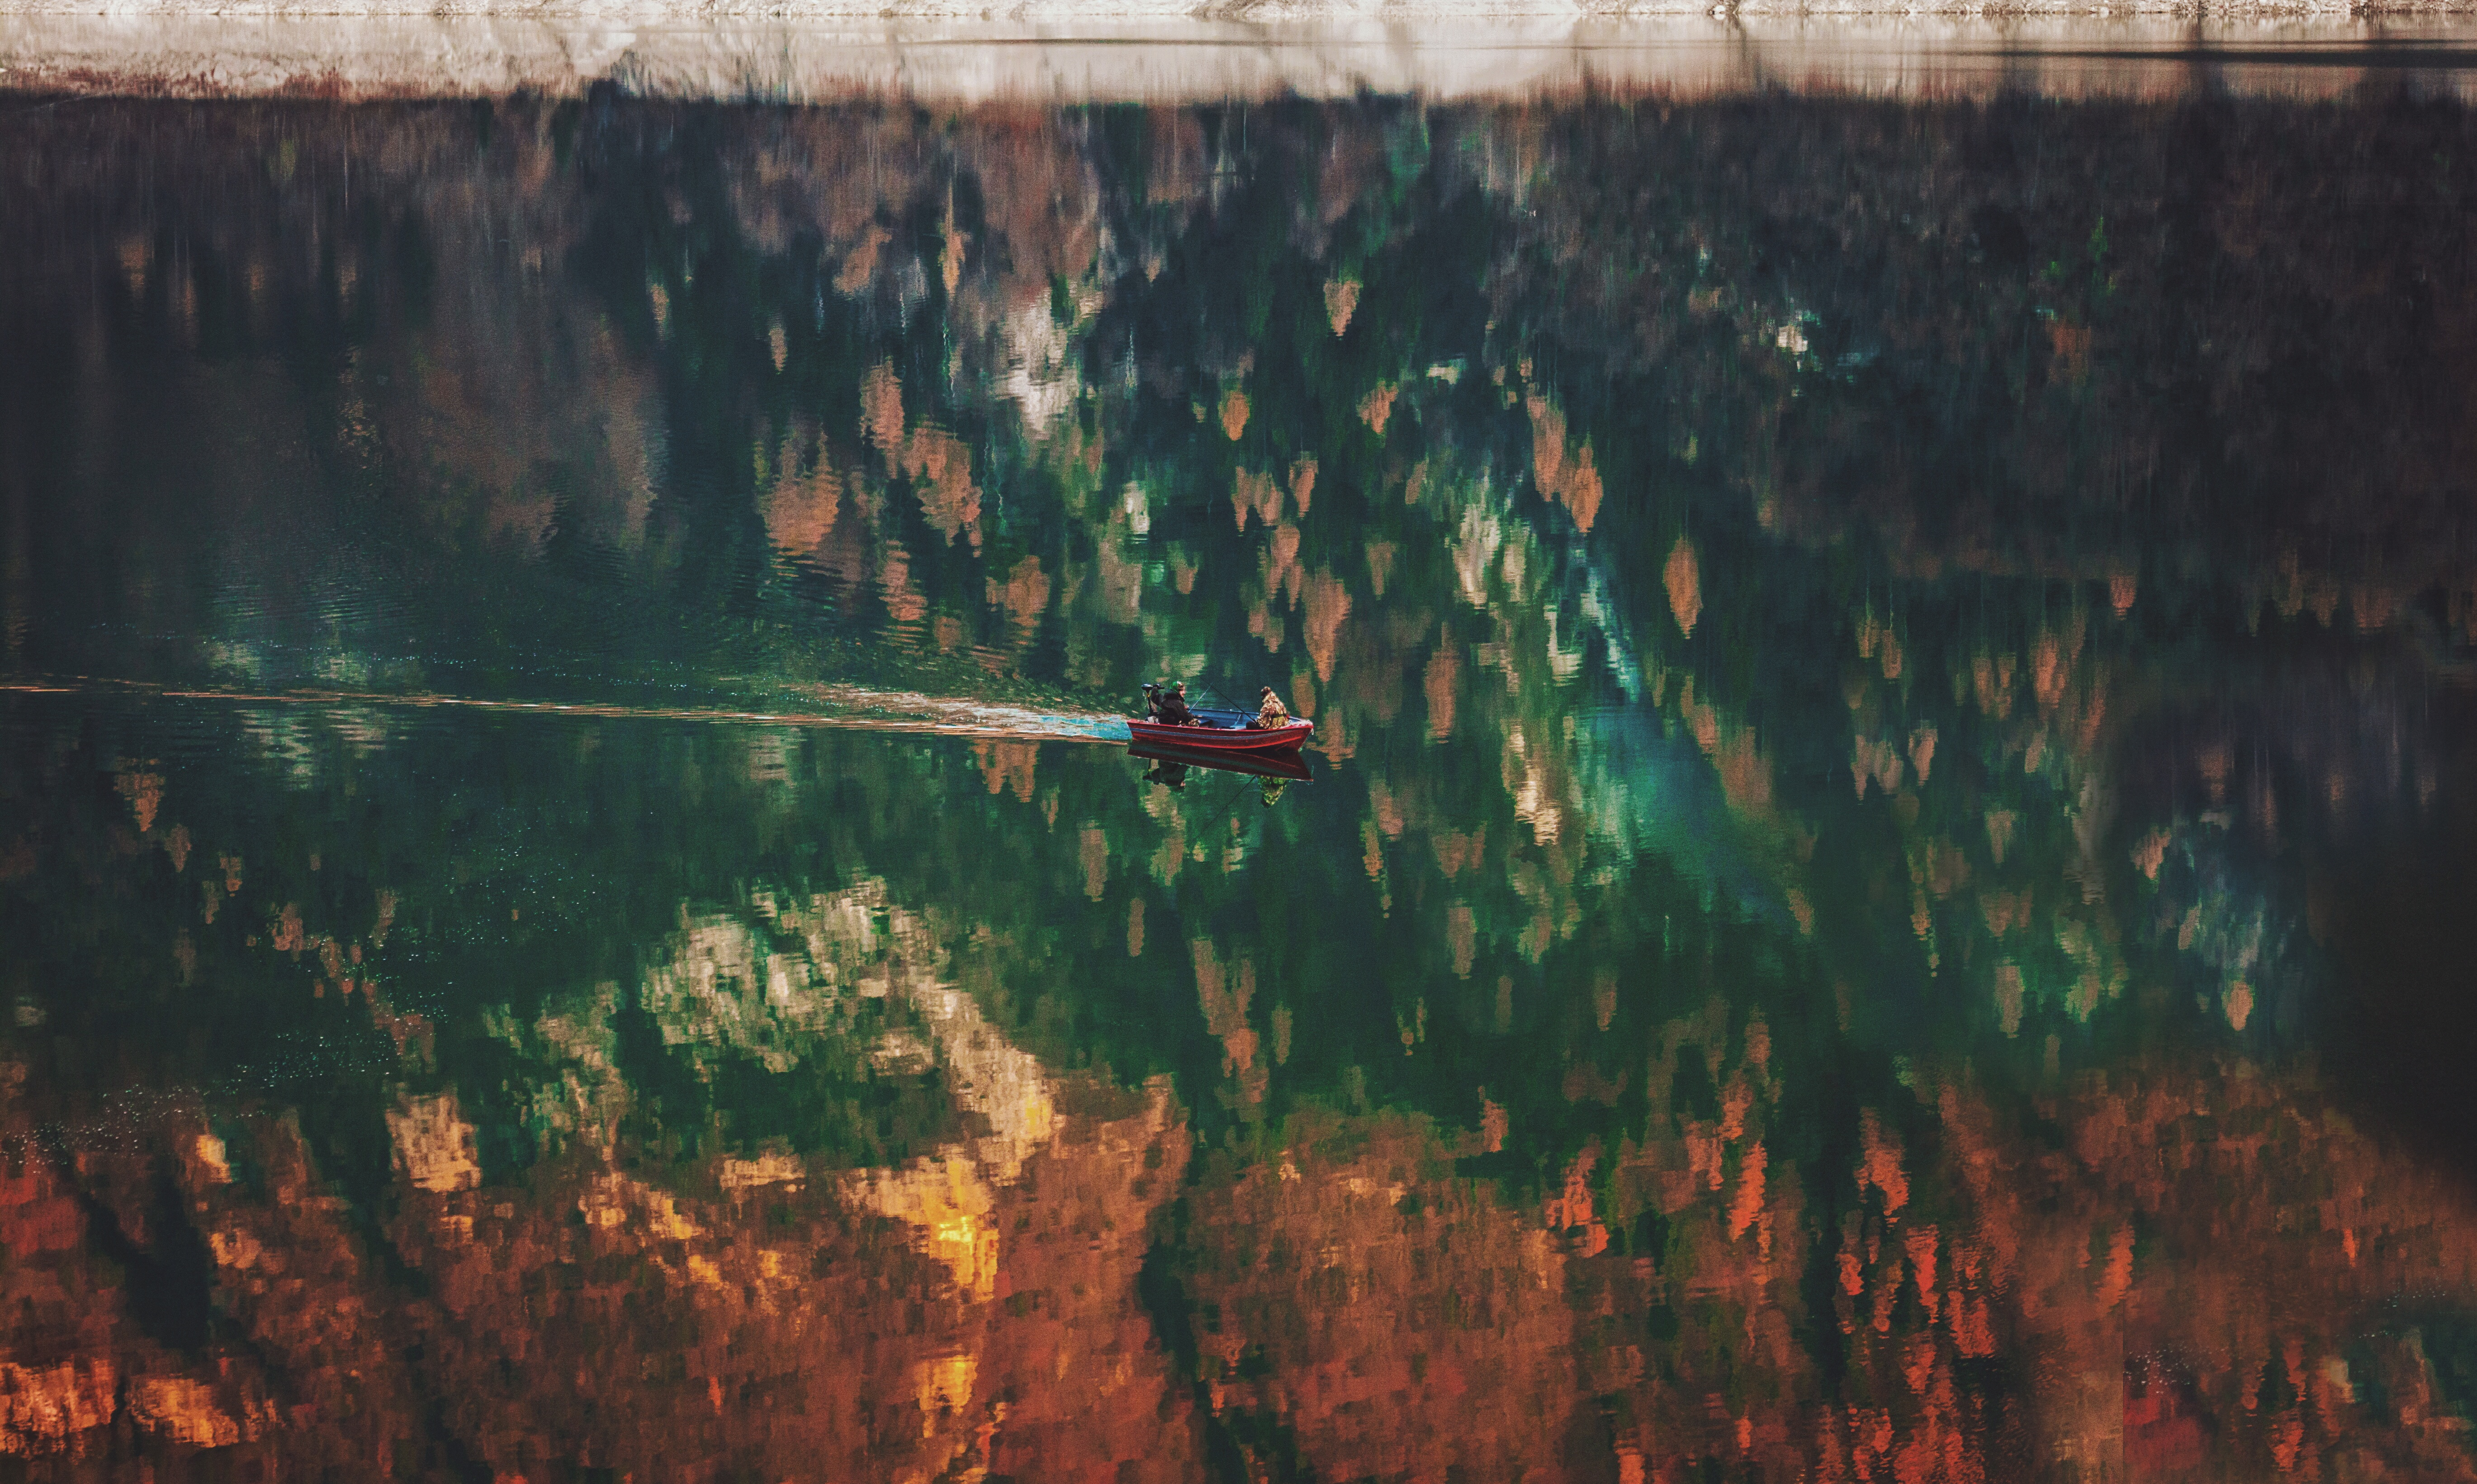 Reflection in the calm lake, calm, lake, water, reflection, boat, boat